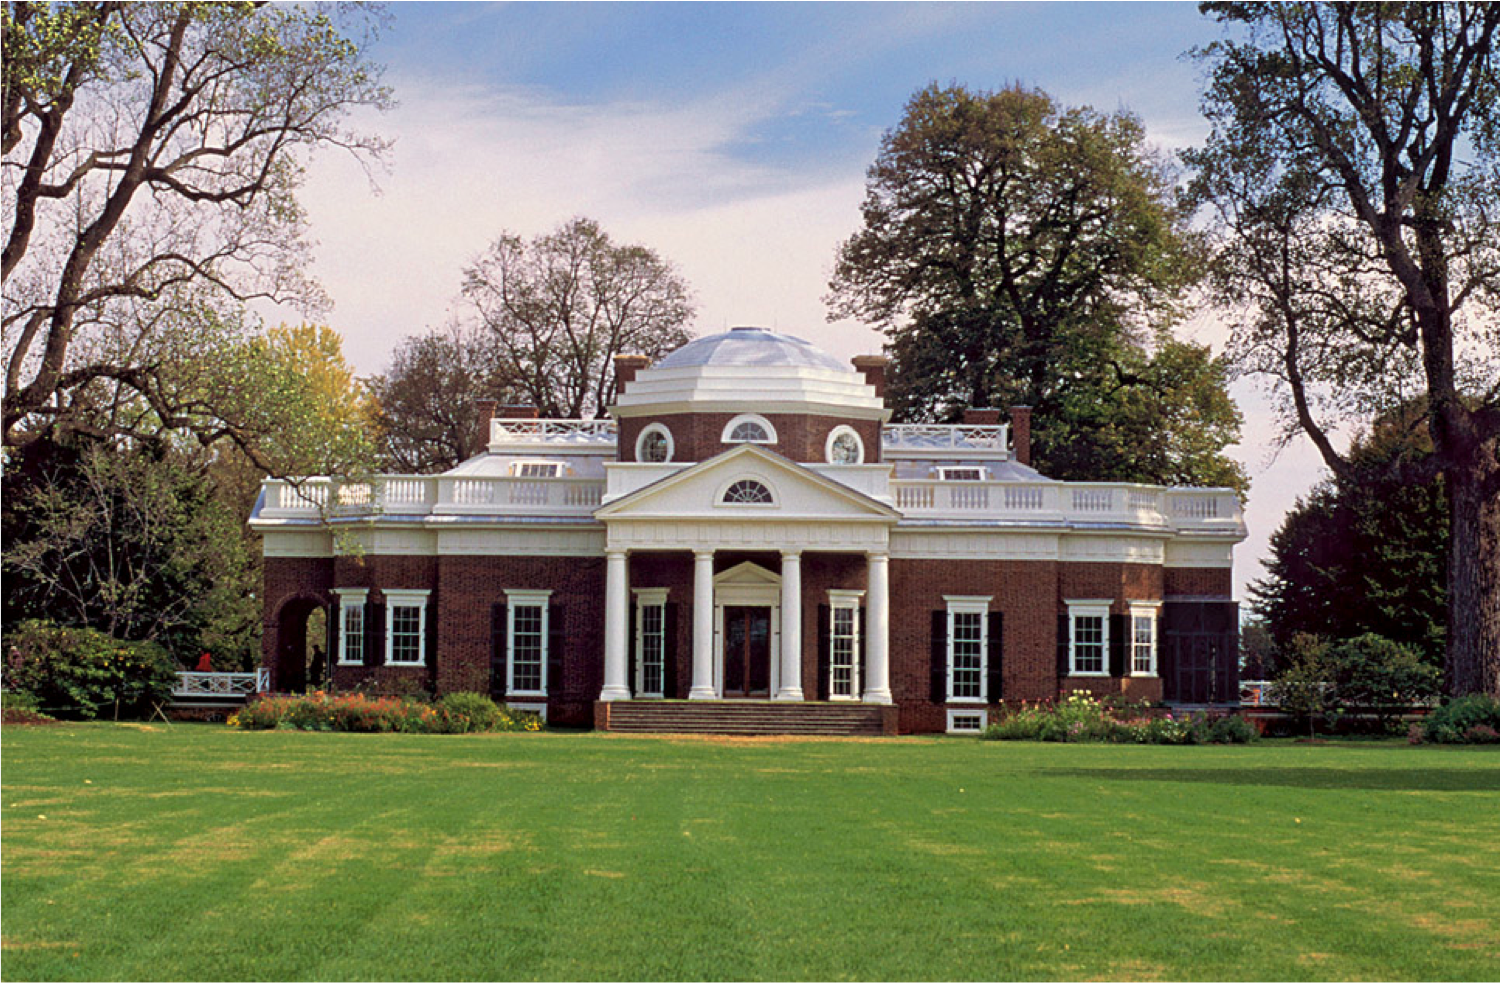 Monticello, the home of Thomas Jefferson, third President of the US